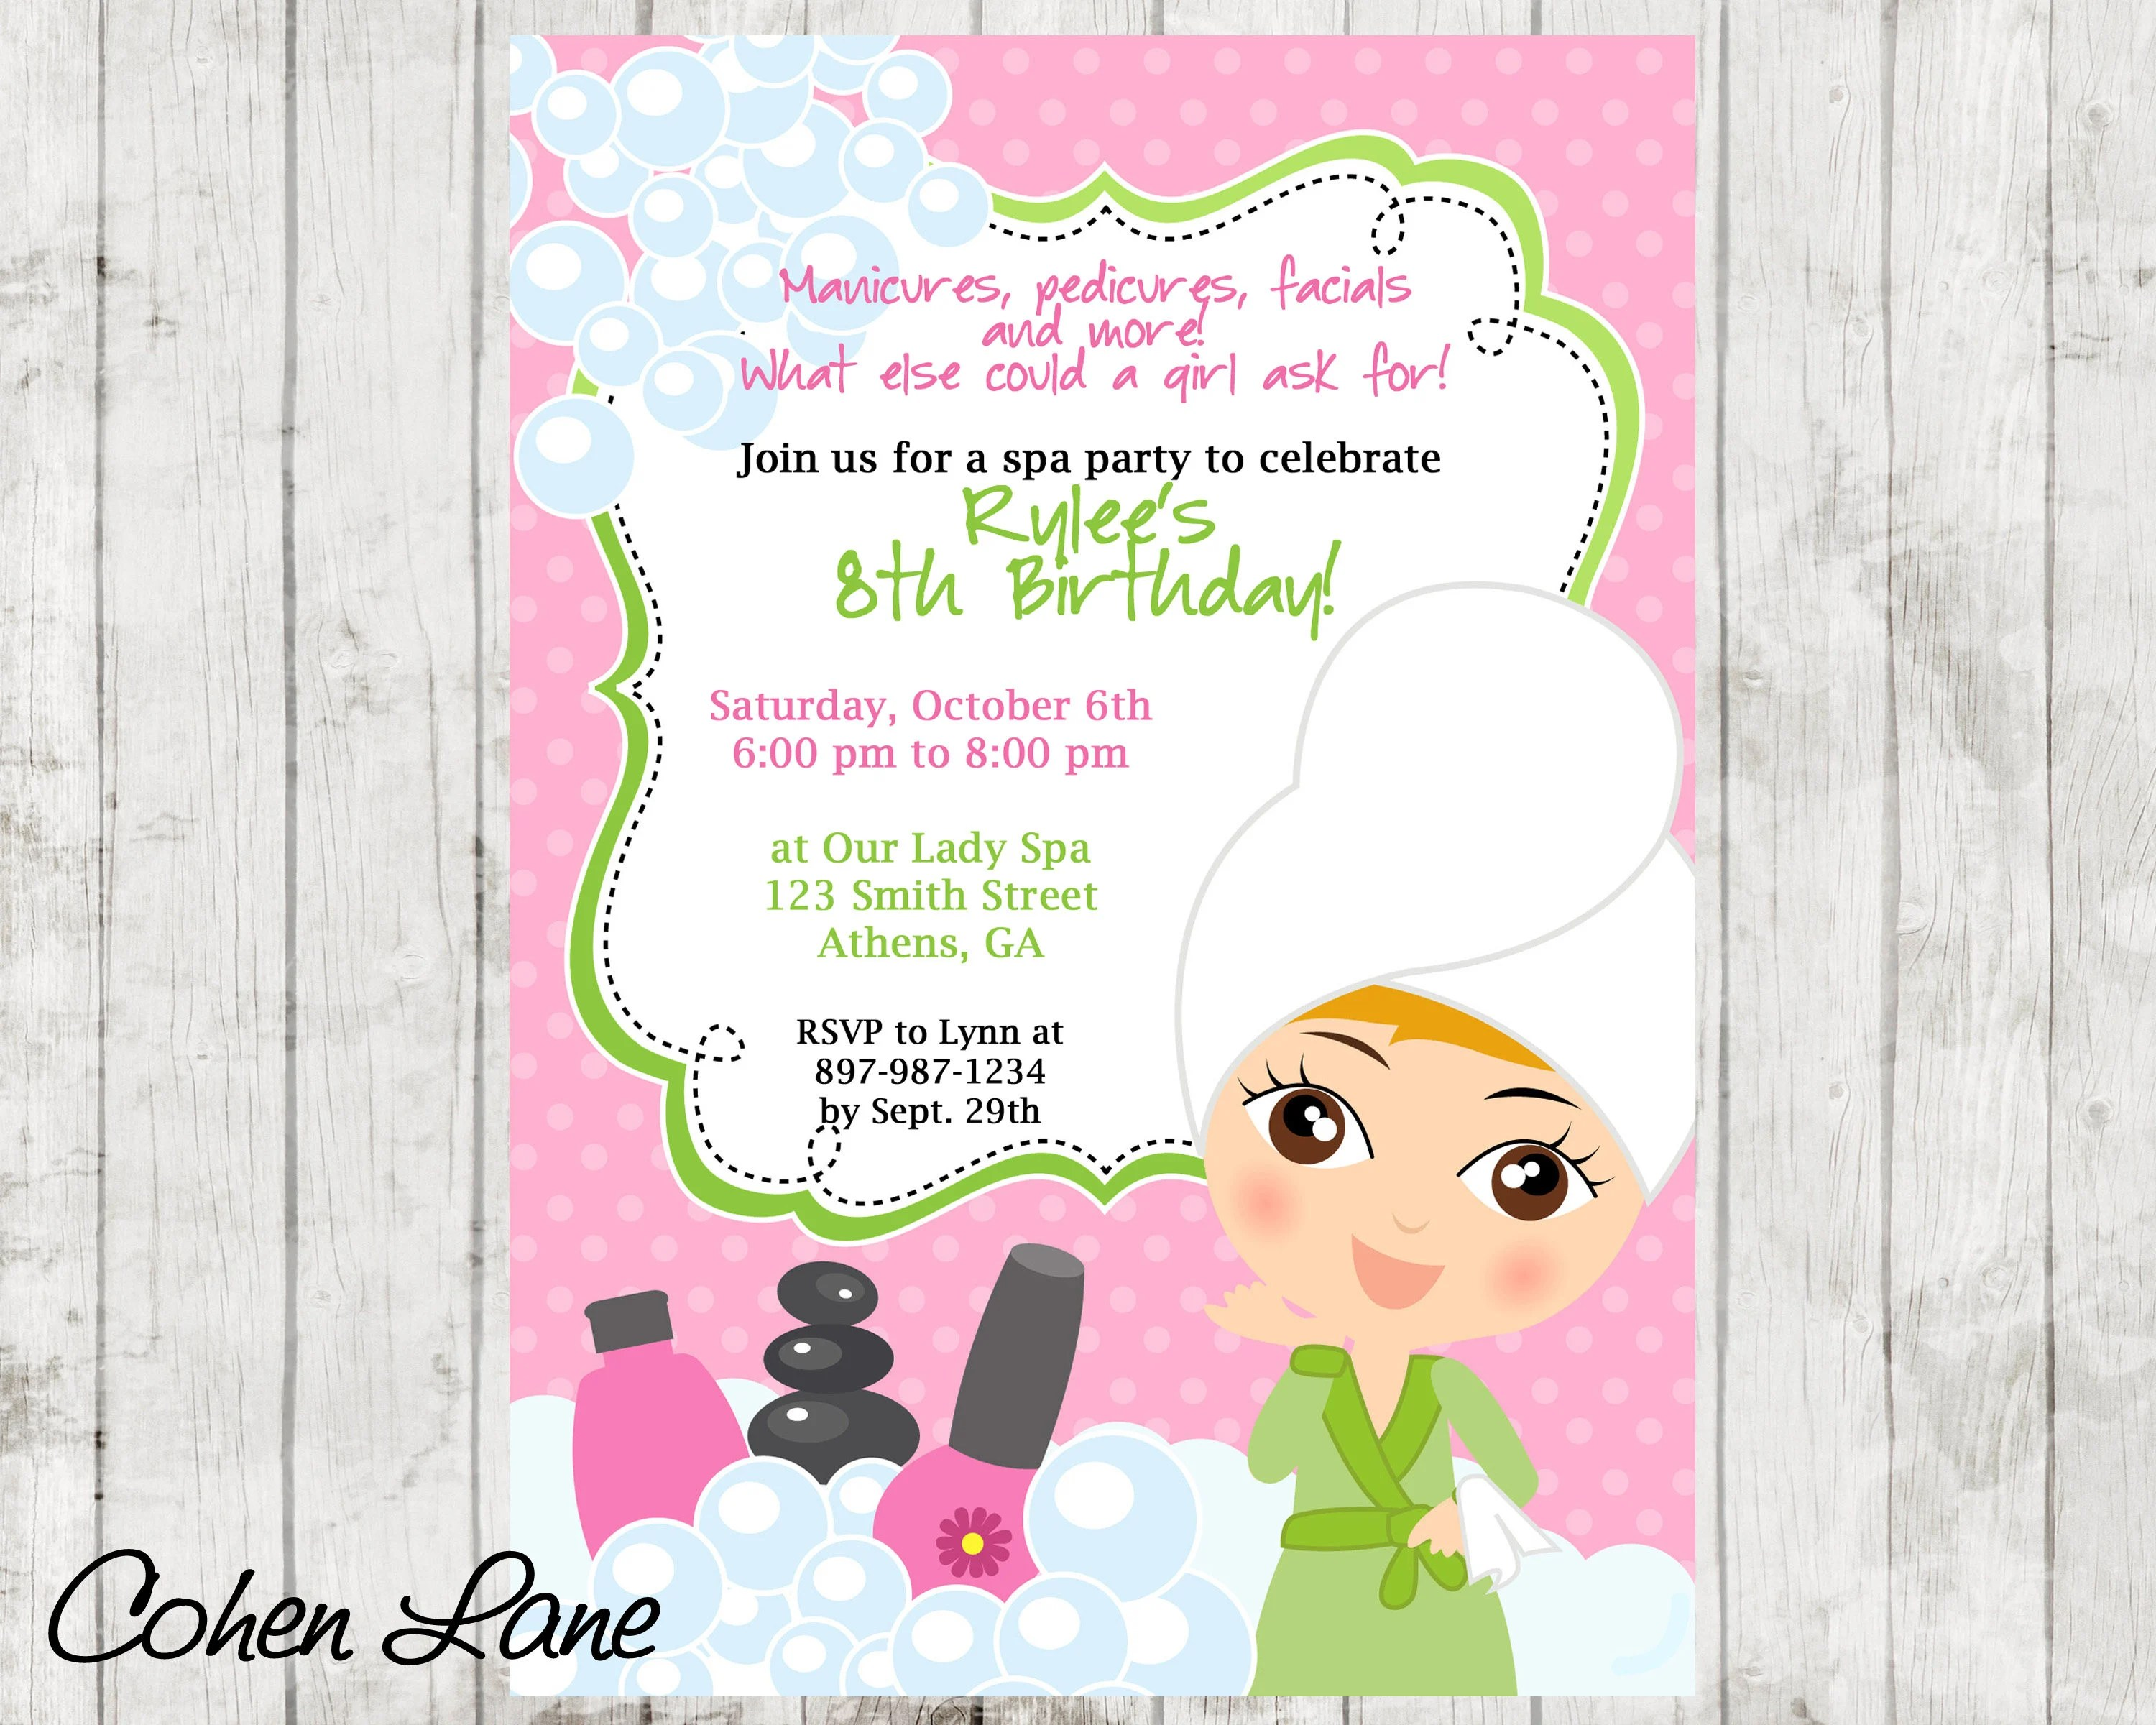 Sassy Spa Party invitation Spa Party Invite Spa Invitation Spa - spa invitation